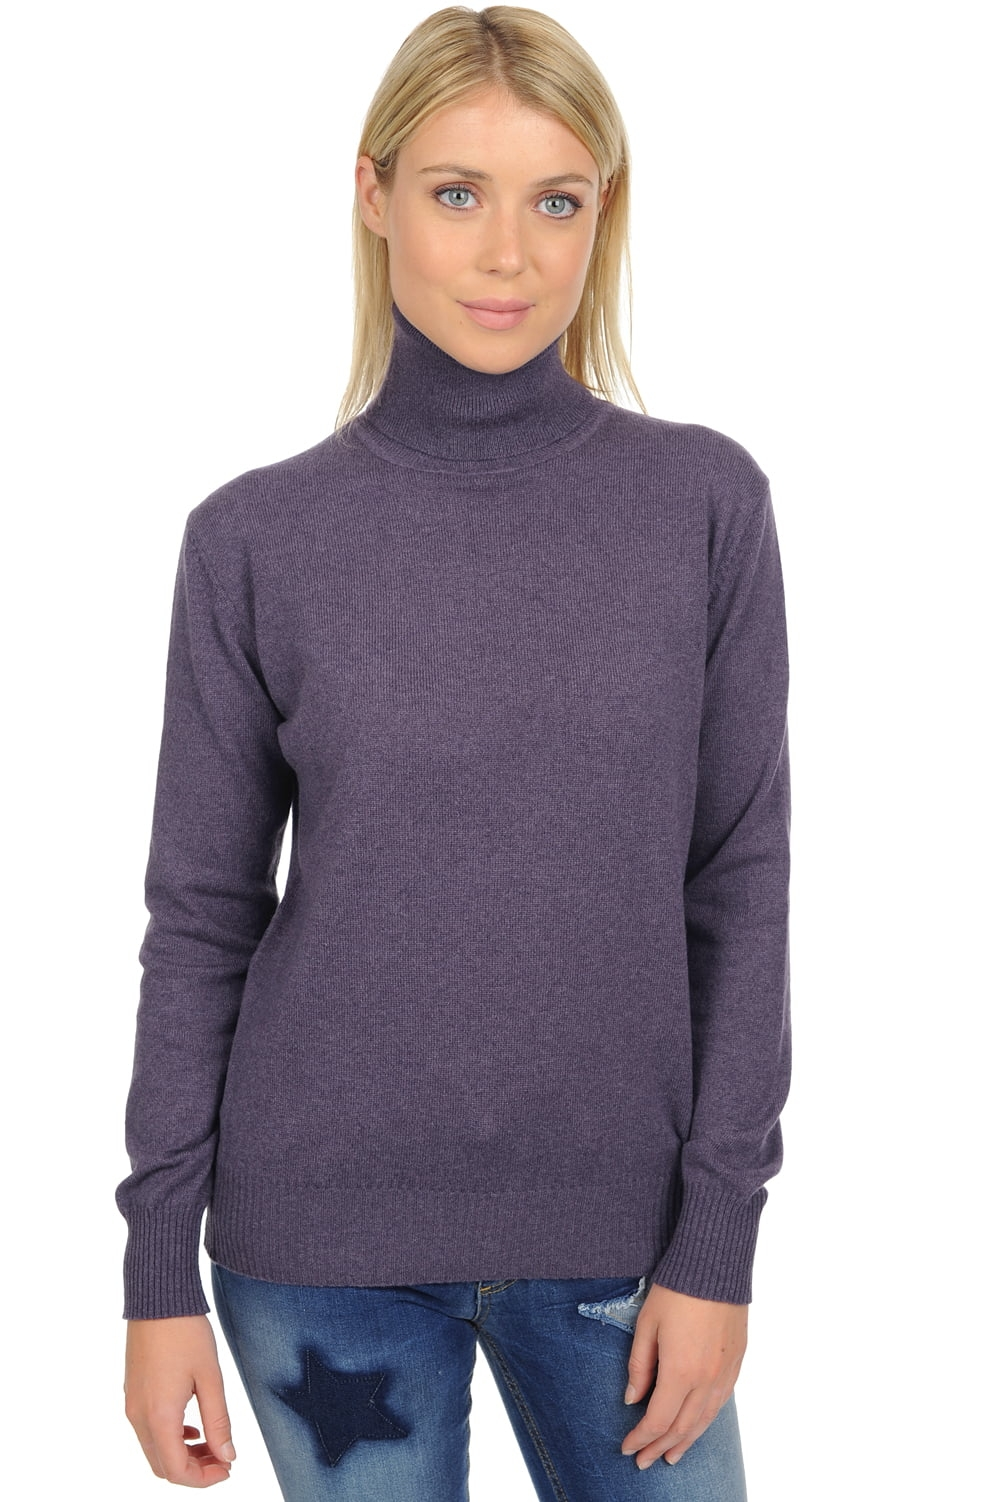 Cachemire pull femme col roule lili mure 3xl